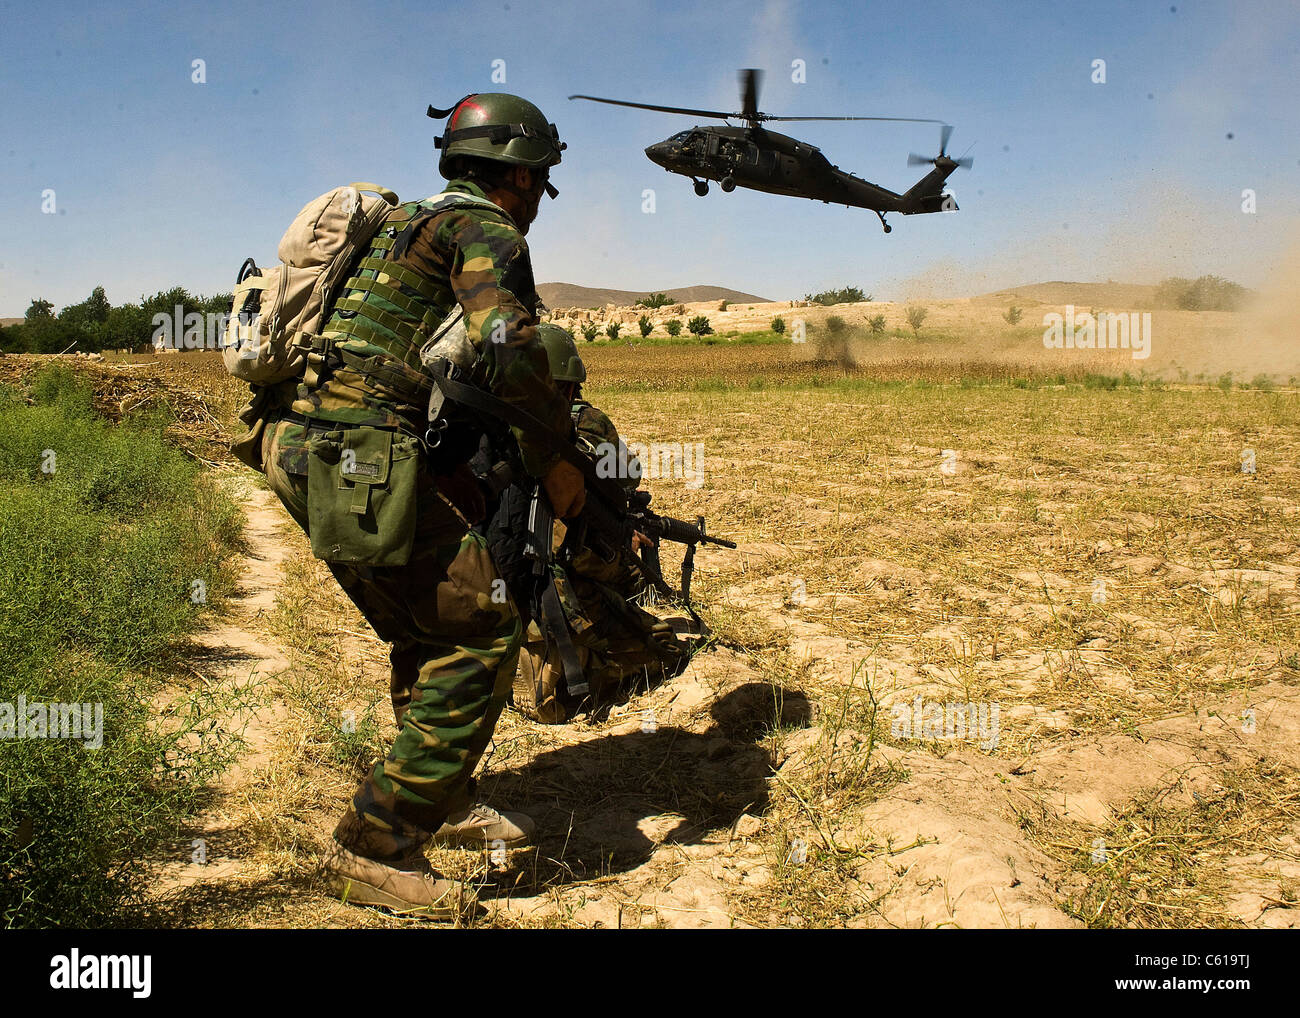 An Afghan commando braces himself as a UH-60 Black Hawk helicopter comes in to extract him following a clearing - Stock Image